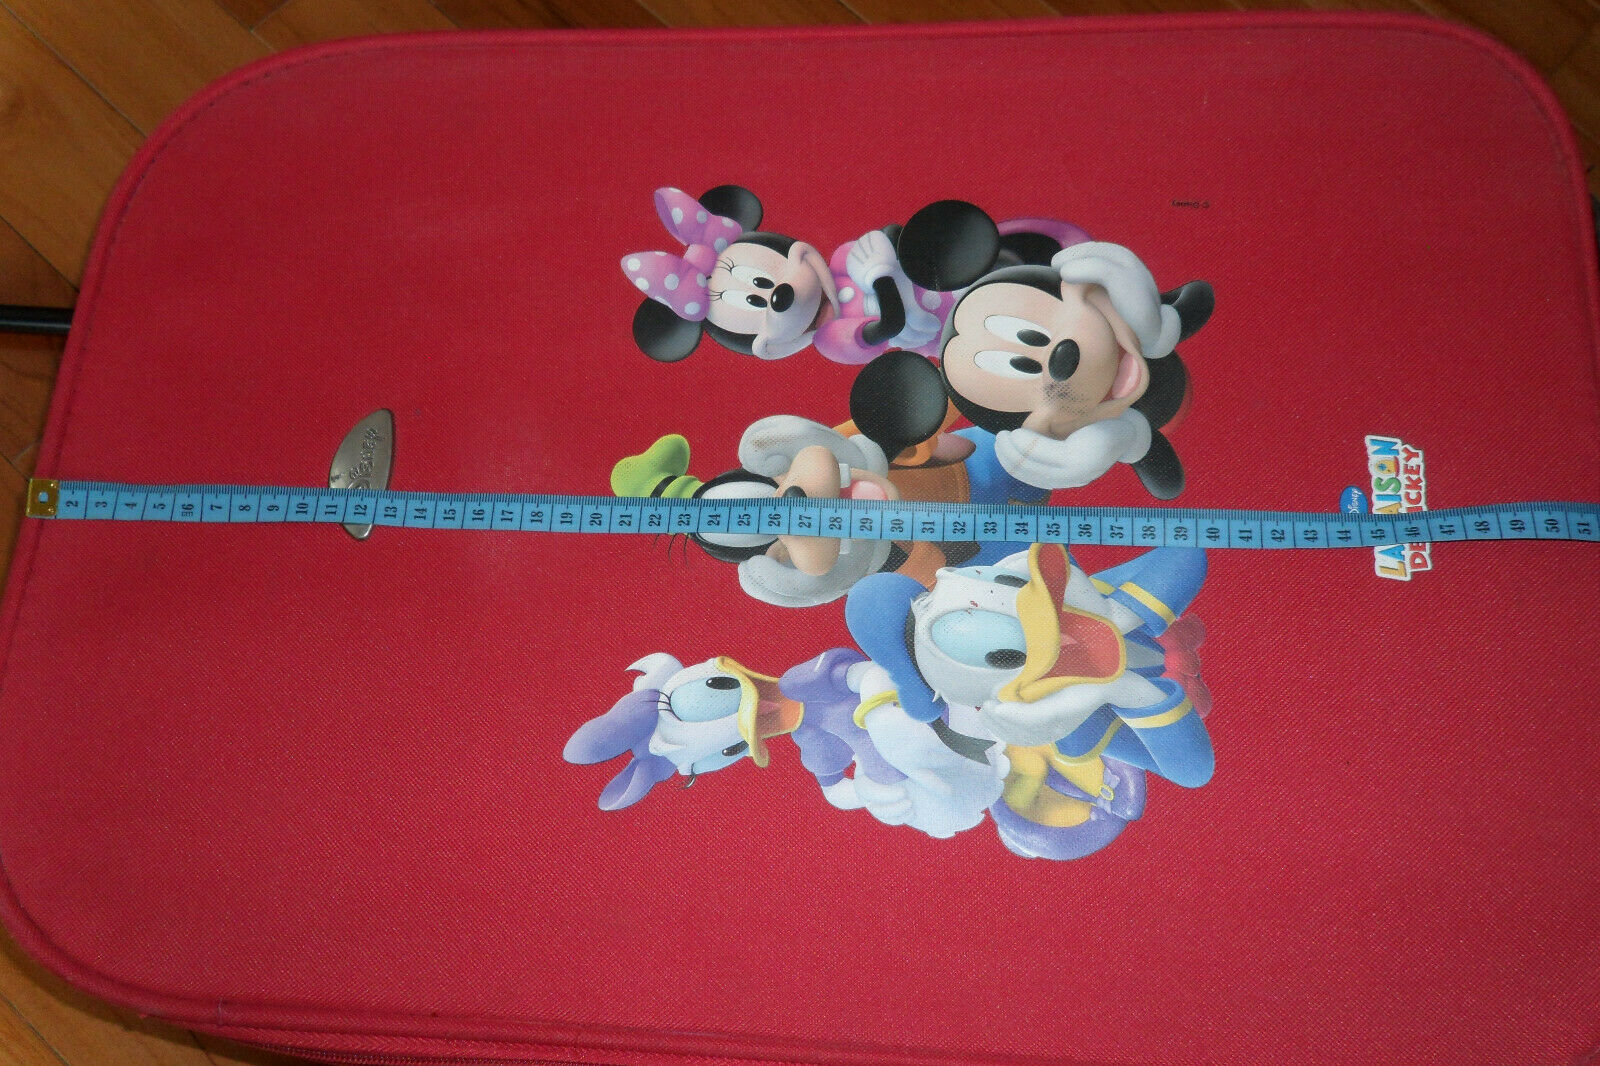 Disney valise trolley rouge la maison de mickey